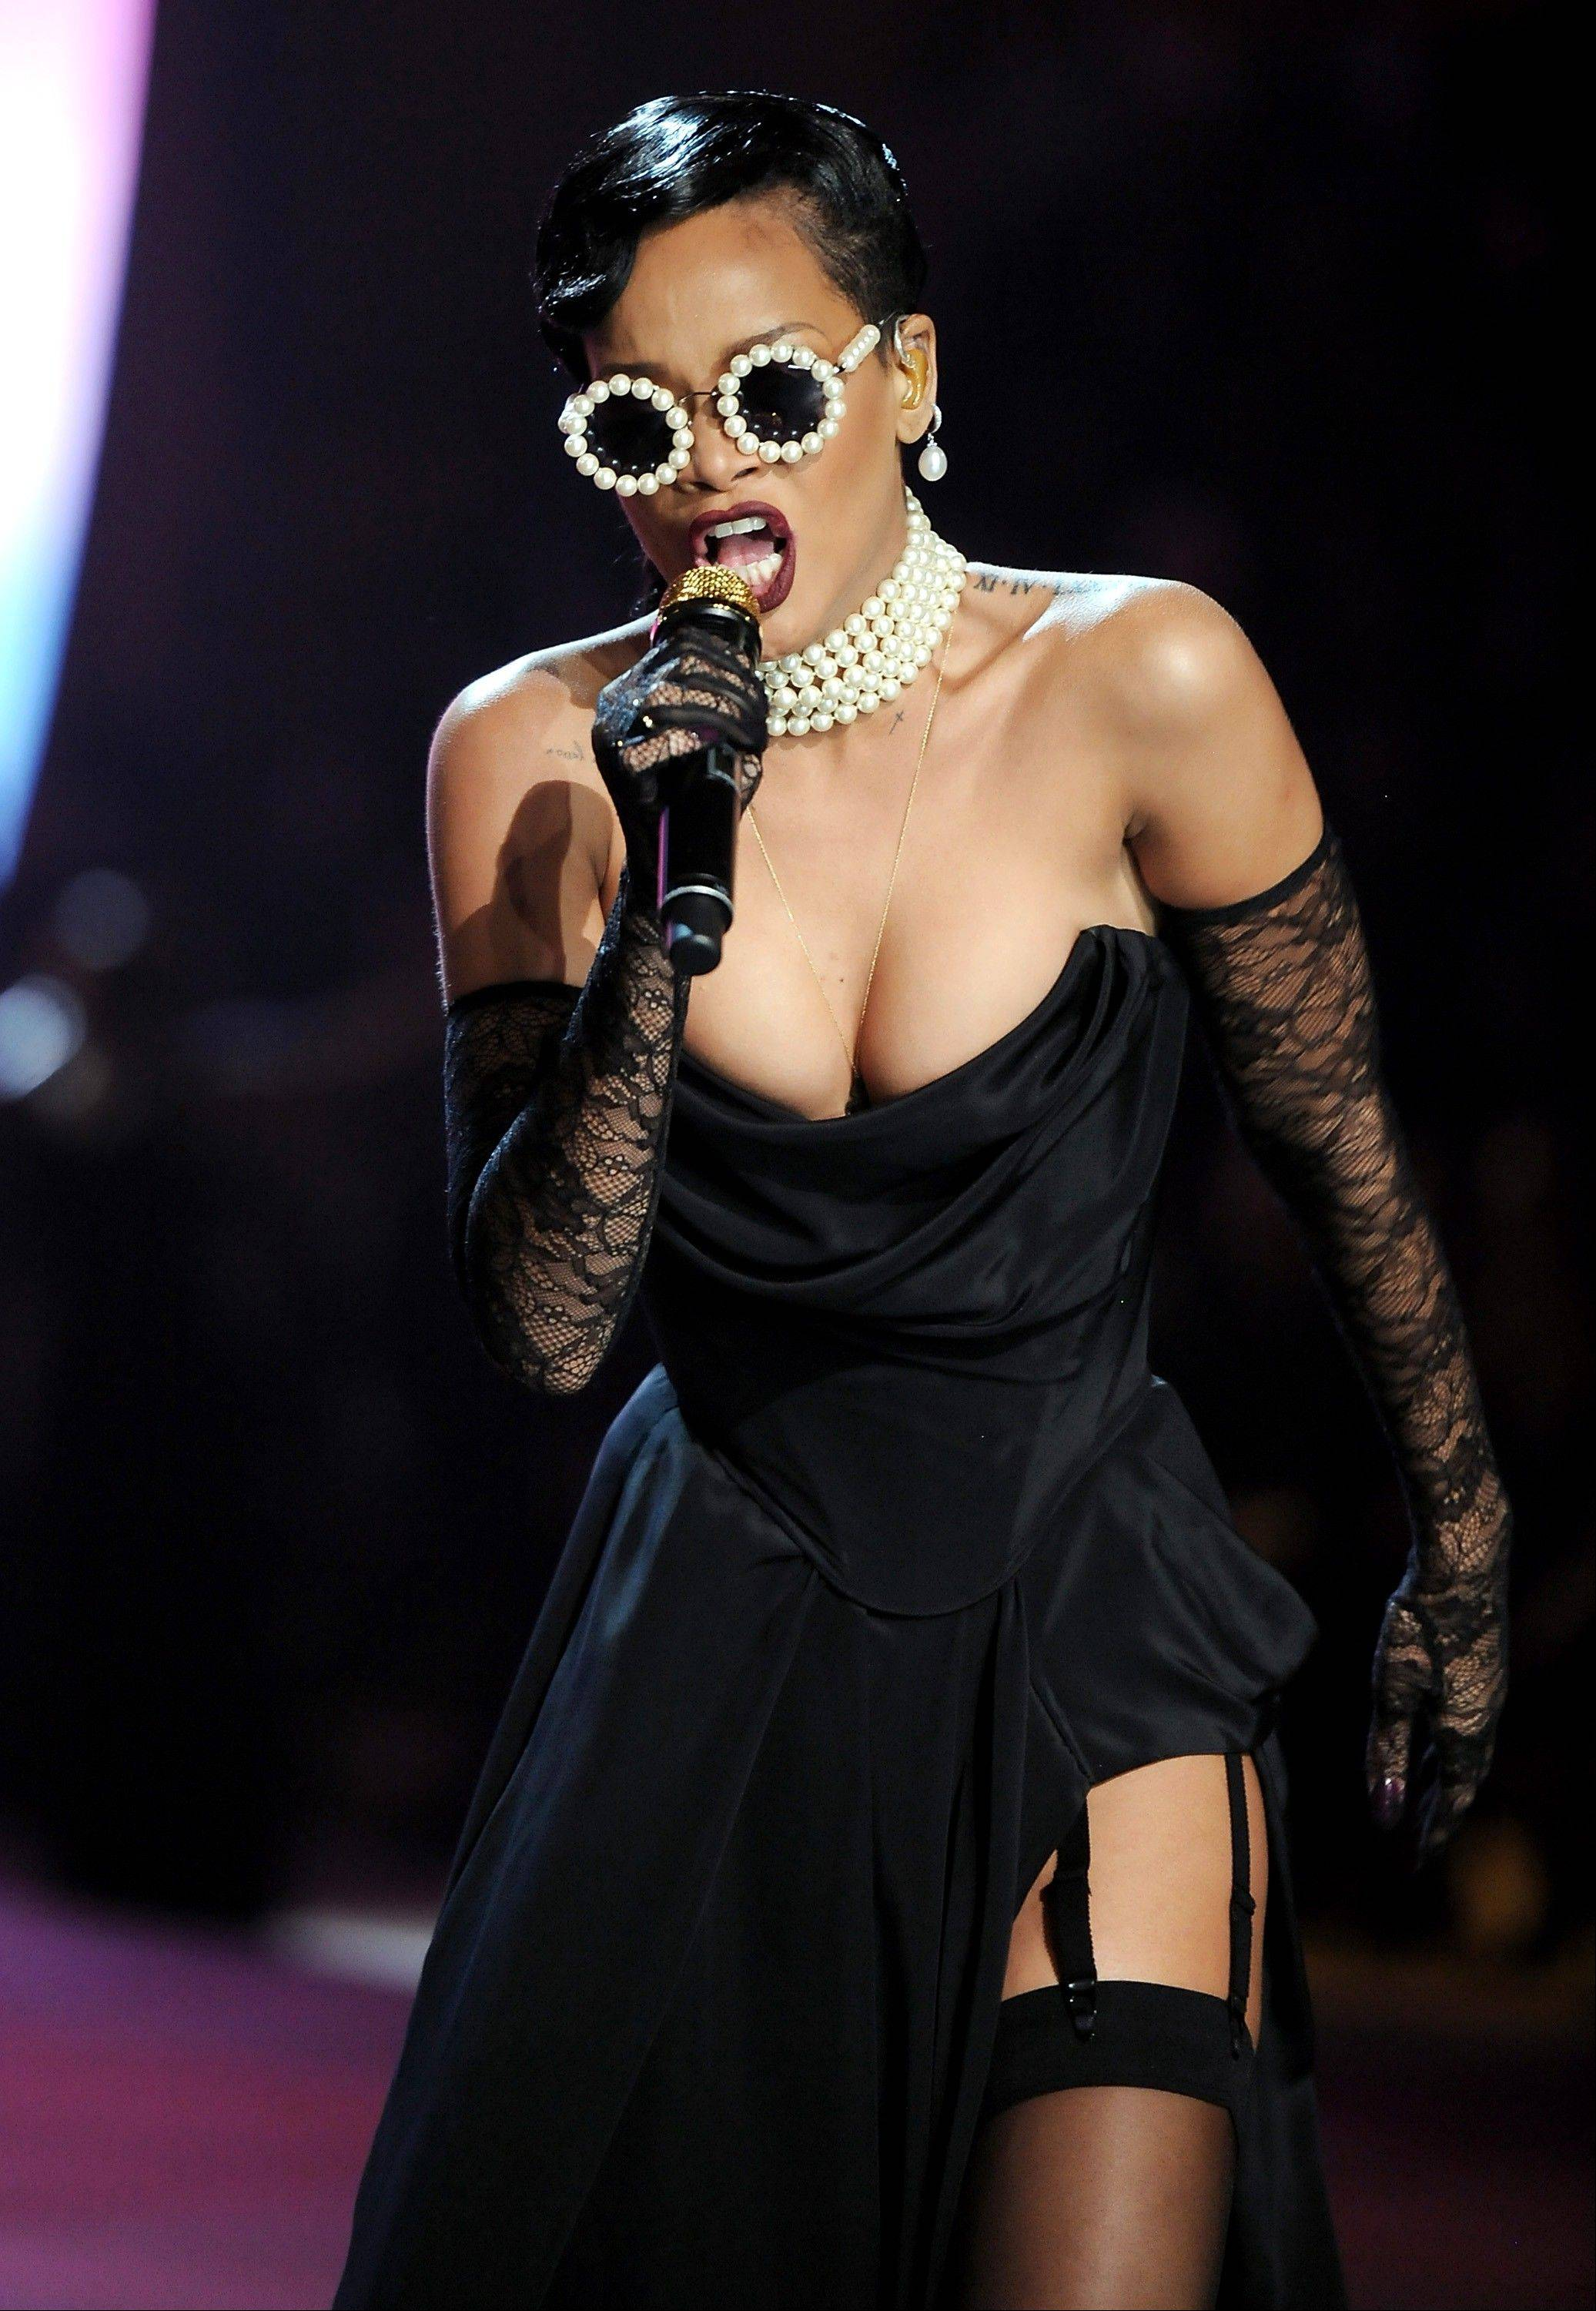 Singer Rihanna performs during the 2012 Victoria�s Secret Fashion Show on Wednesday Nov. 7, 2012 in New York.